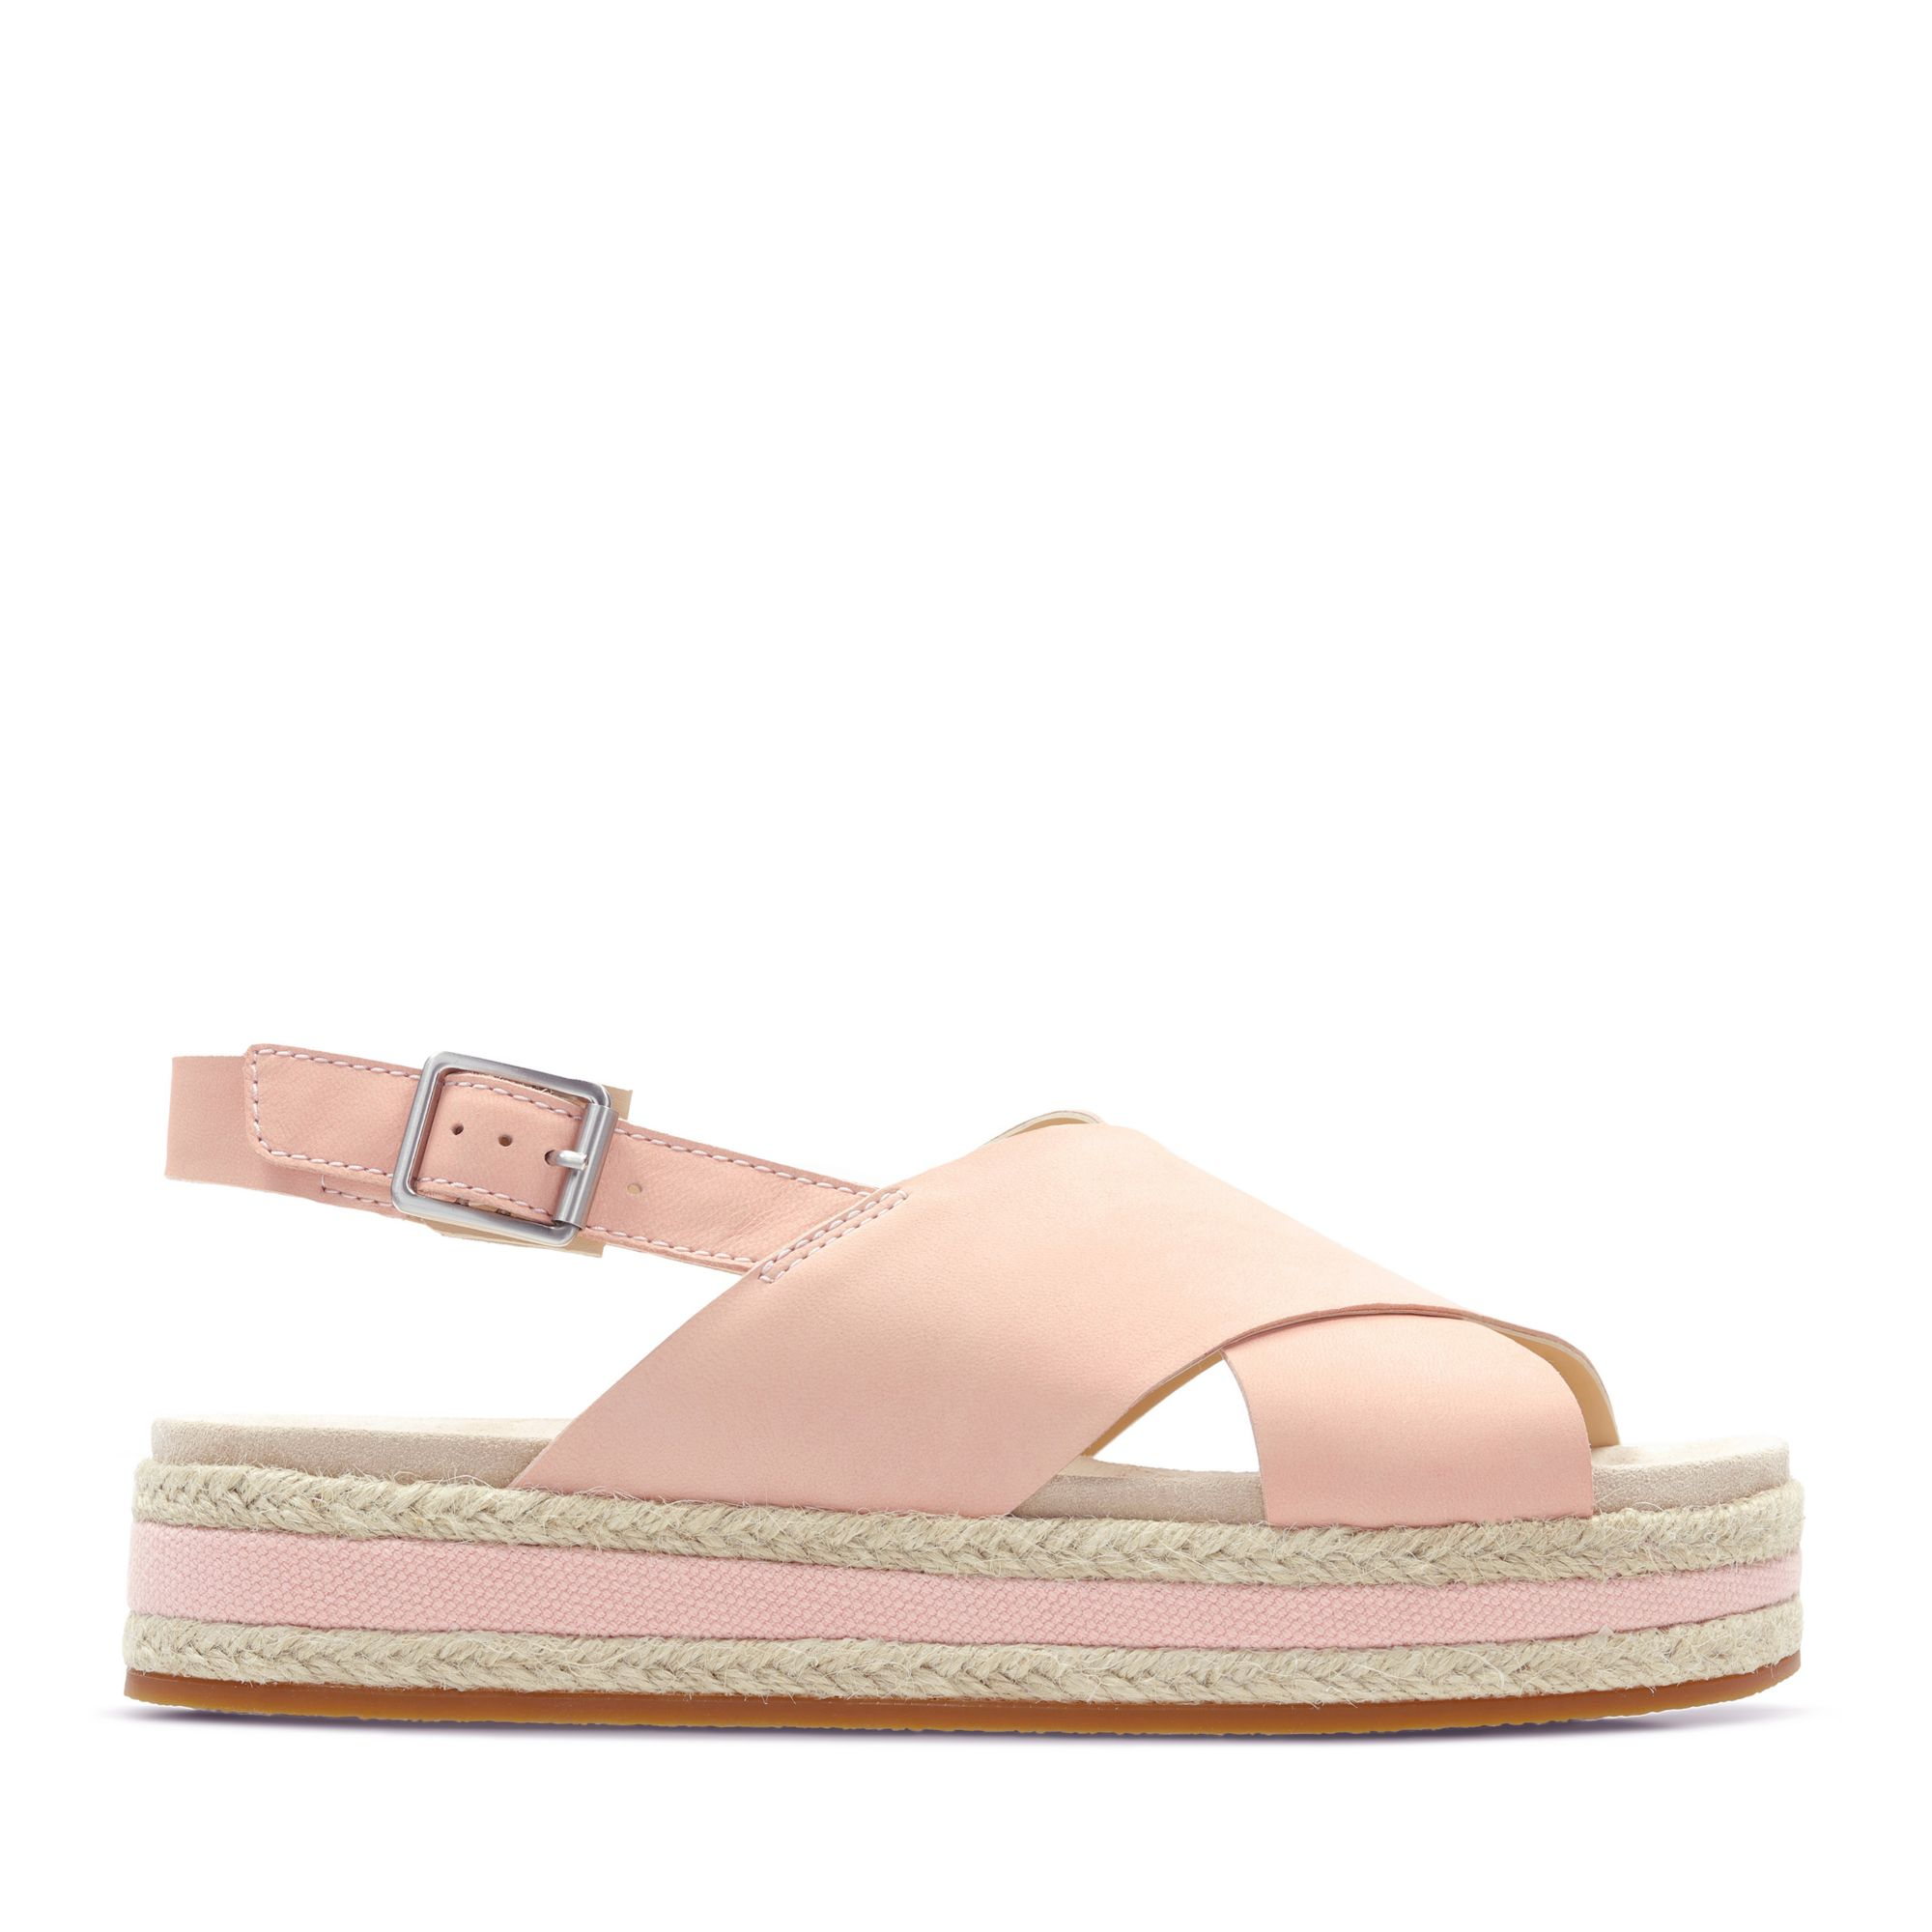 7 Products 795 Browse Shoes Clarks From XZTPwkuOi